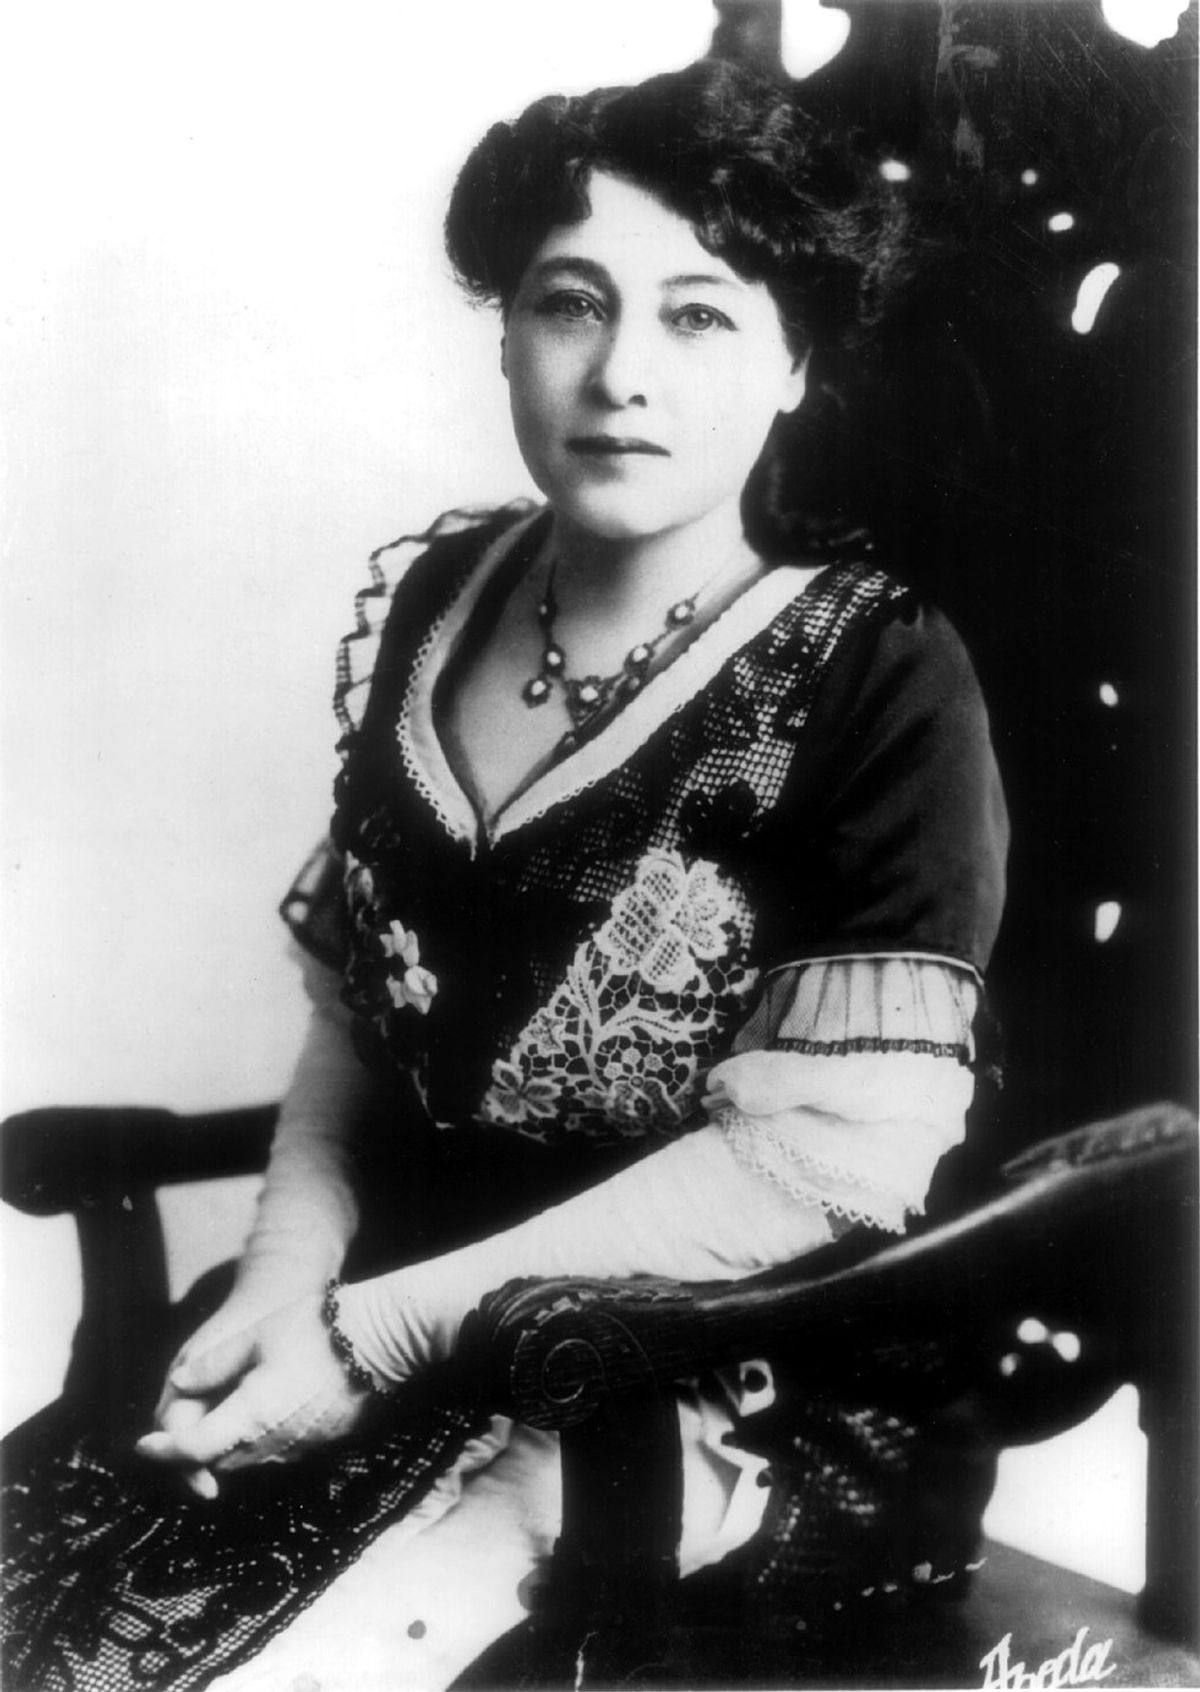 Alice Guy-Blaché, The Lost Female Film Visionary